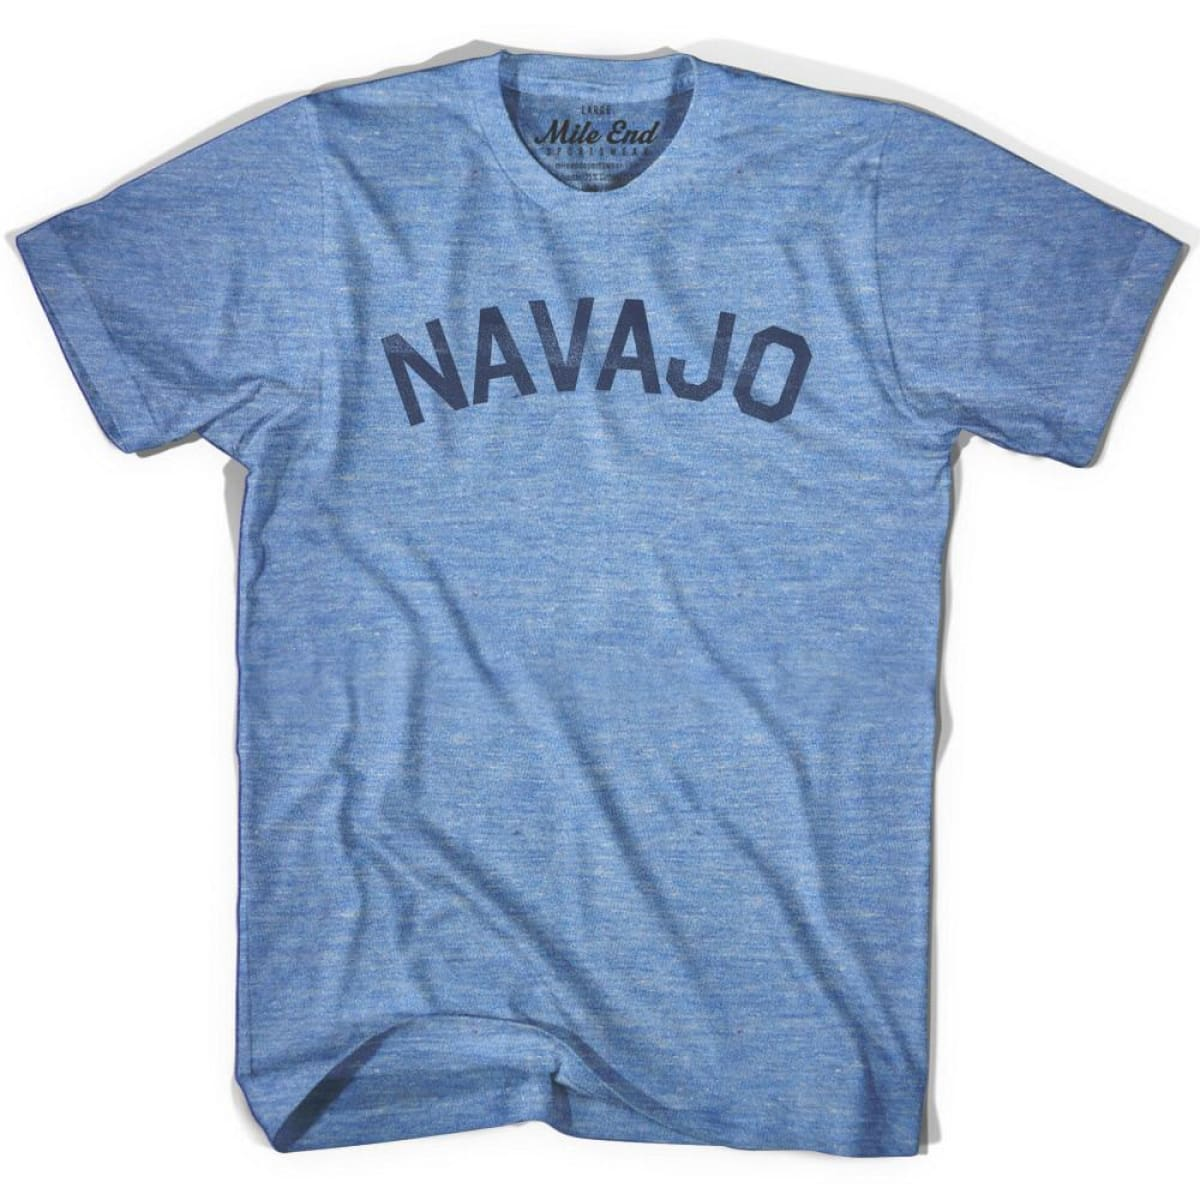 Navajo City Vintage T-shirt - Athletic Blue / Adult X-Small - Mile End City